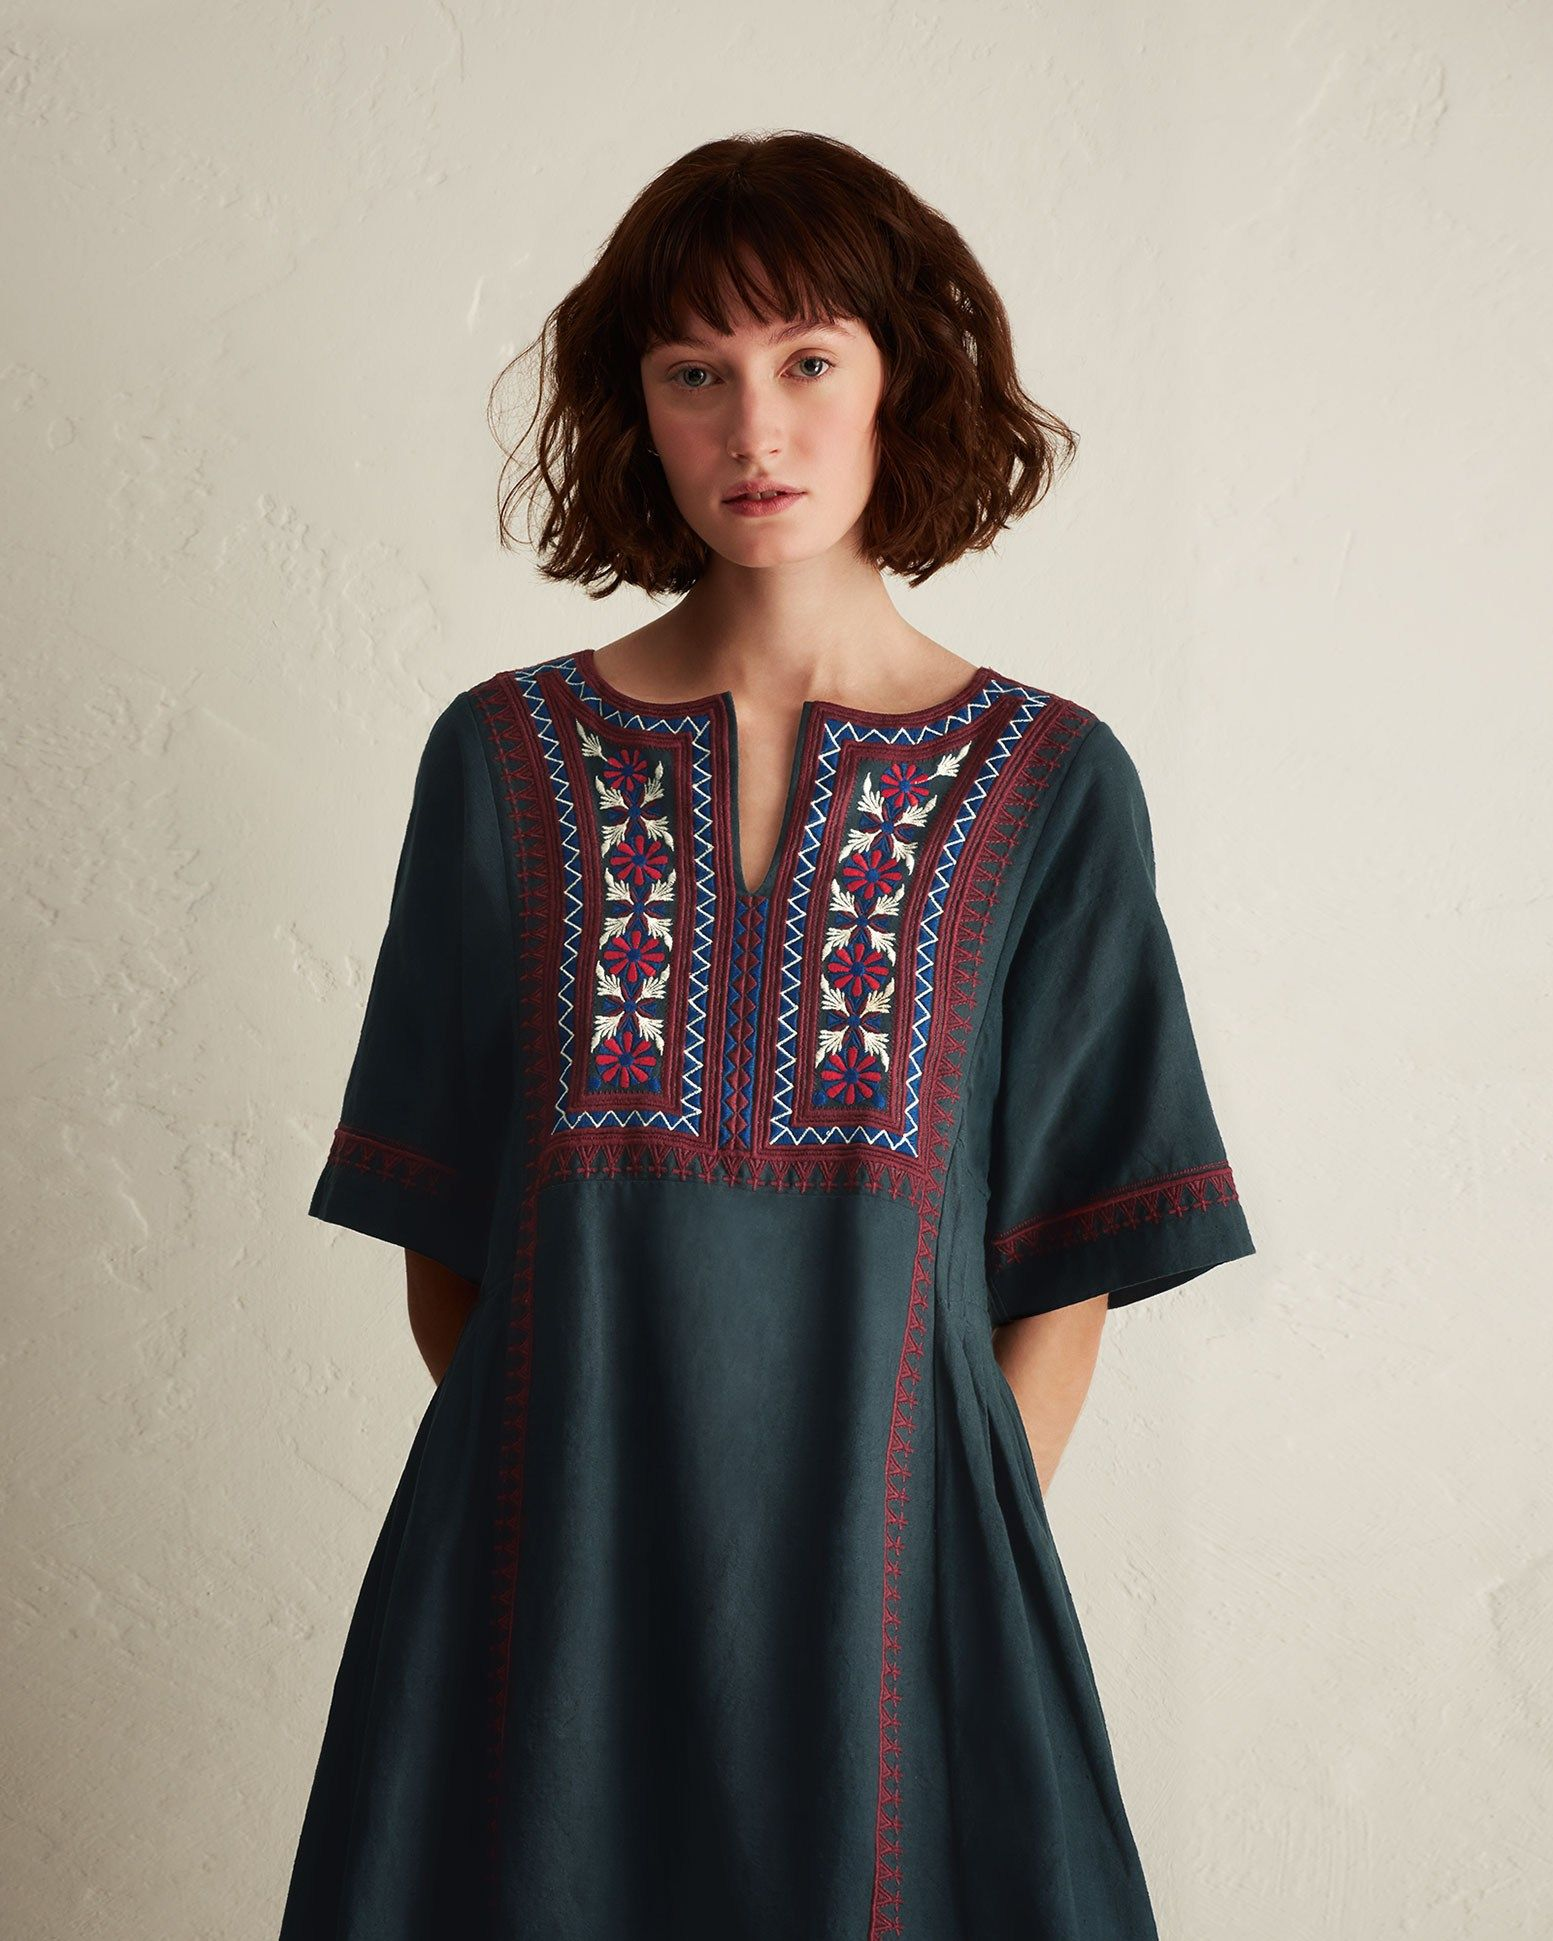 f501a8570541 EMBROIDERED KAFTAN DRESS | Hand spun and hand woven cotton khadi. Kaftan  neckline. Hand embroidered front panel. Above elbow-length sleeves.